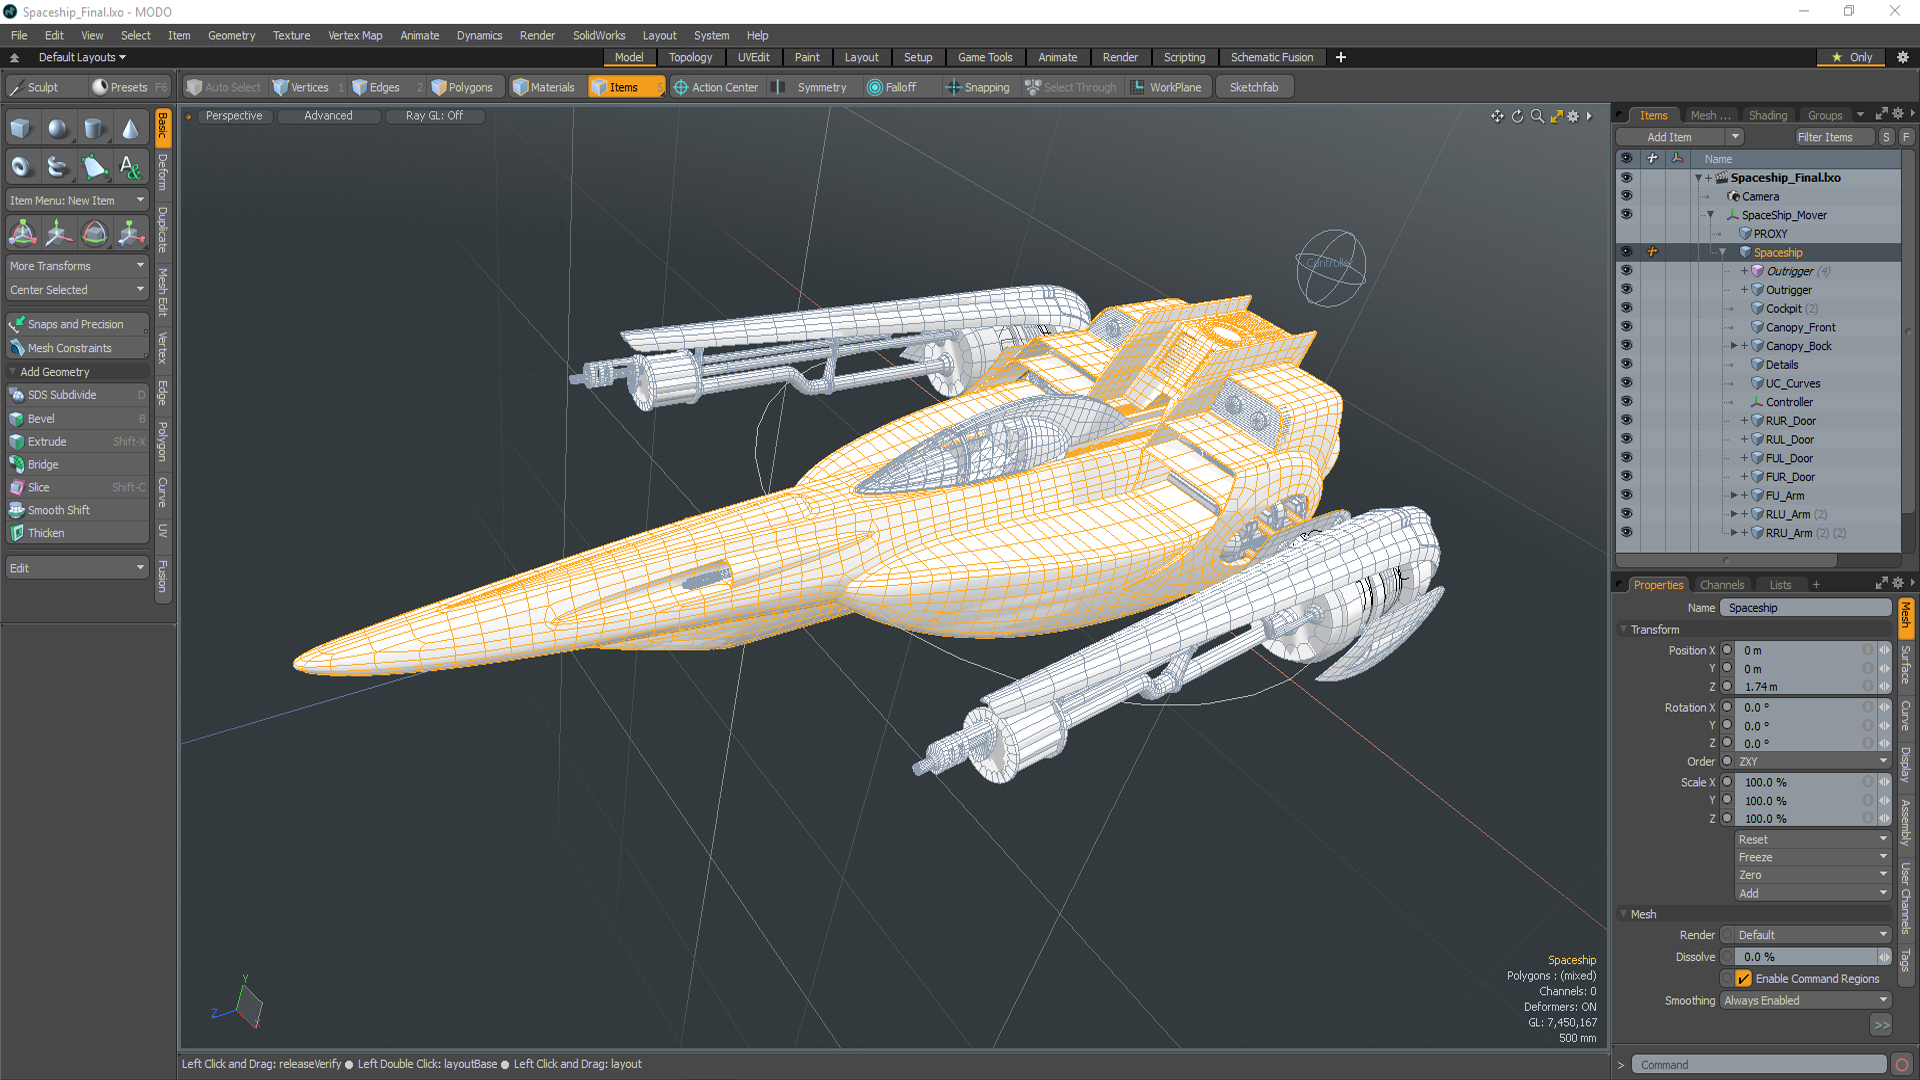 Andy Brown online tutorial video series for 3d modeling and sculpting